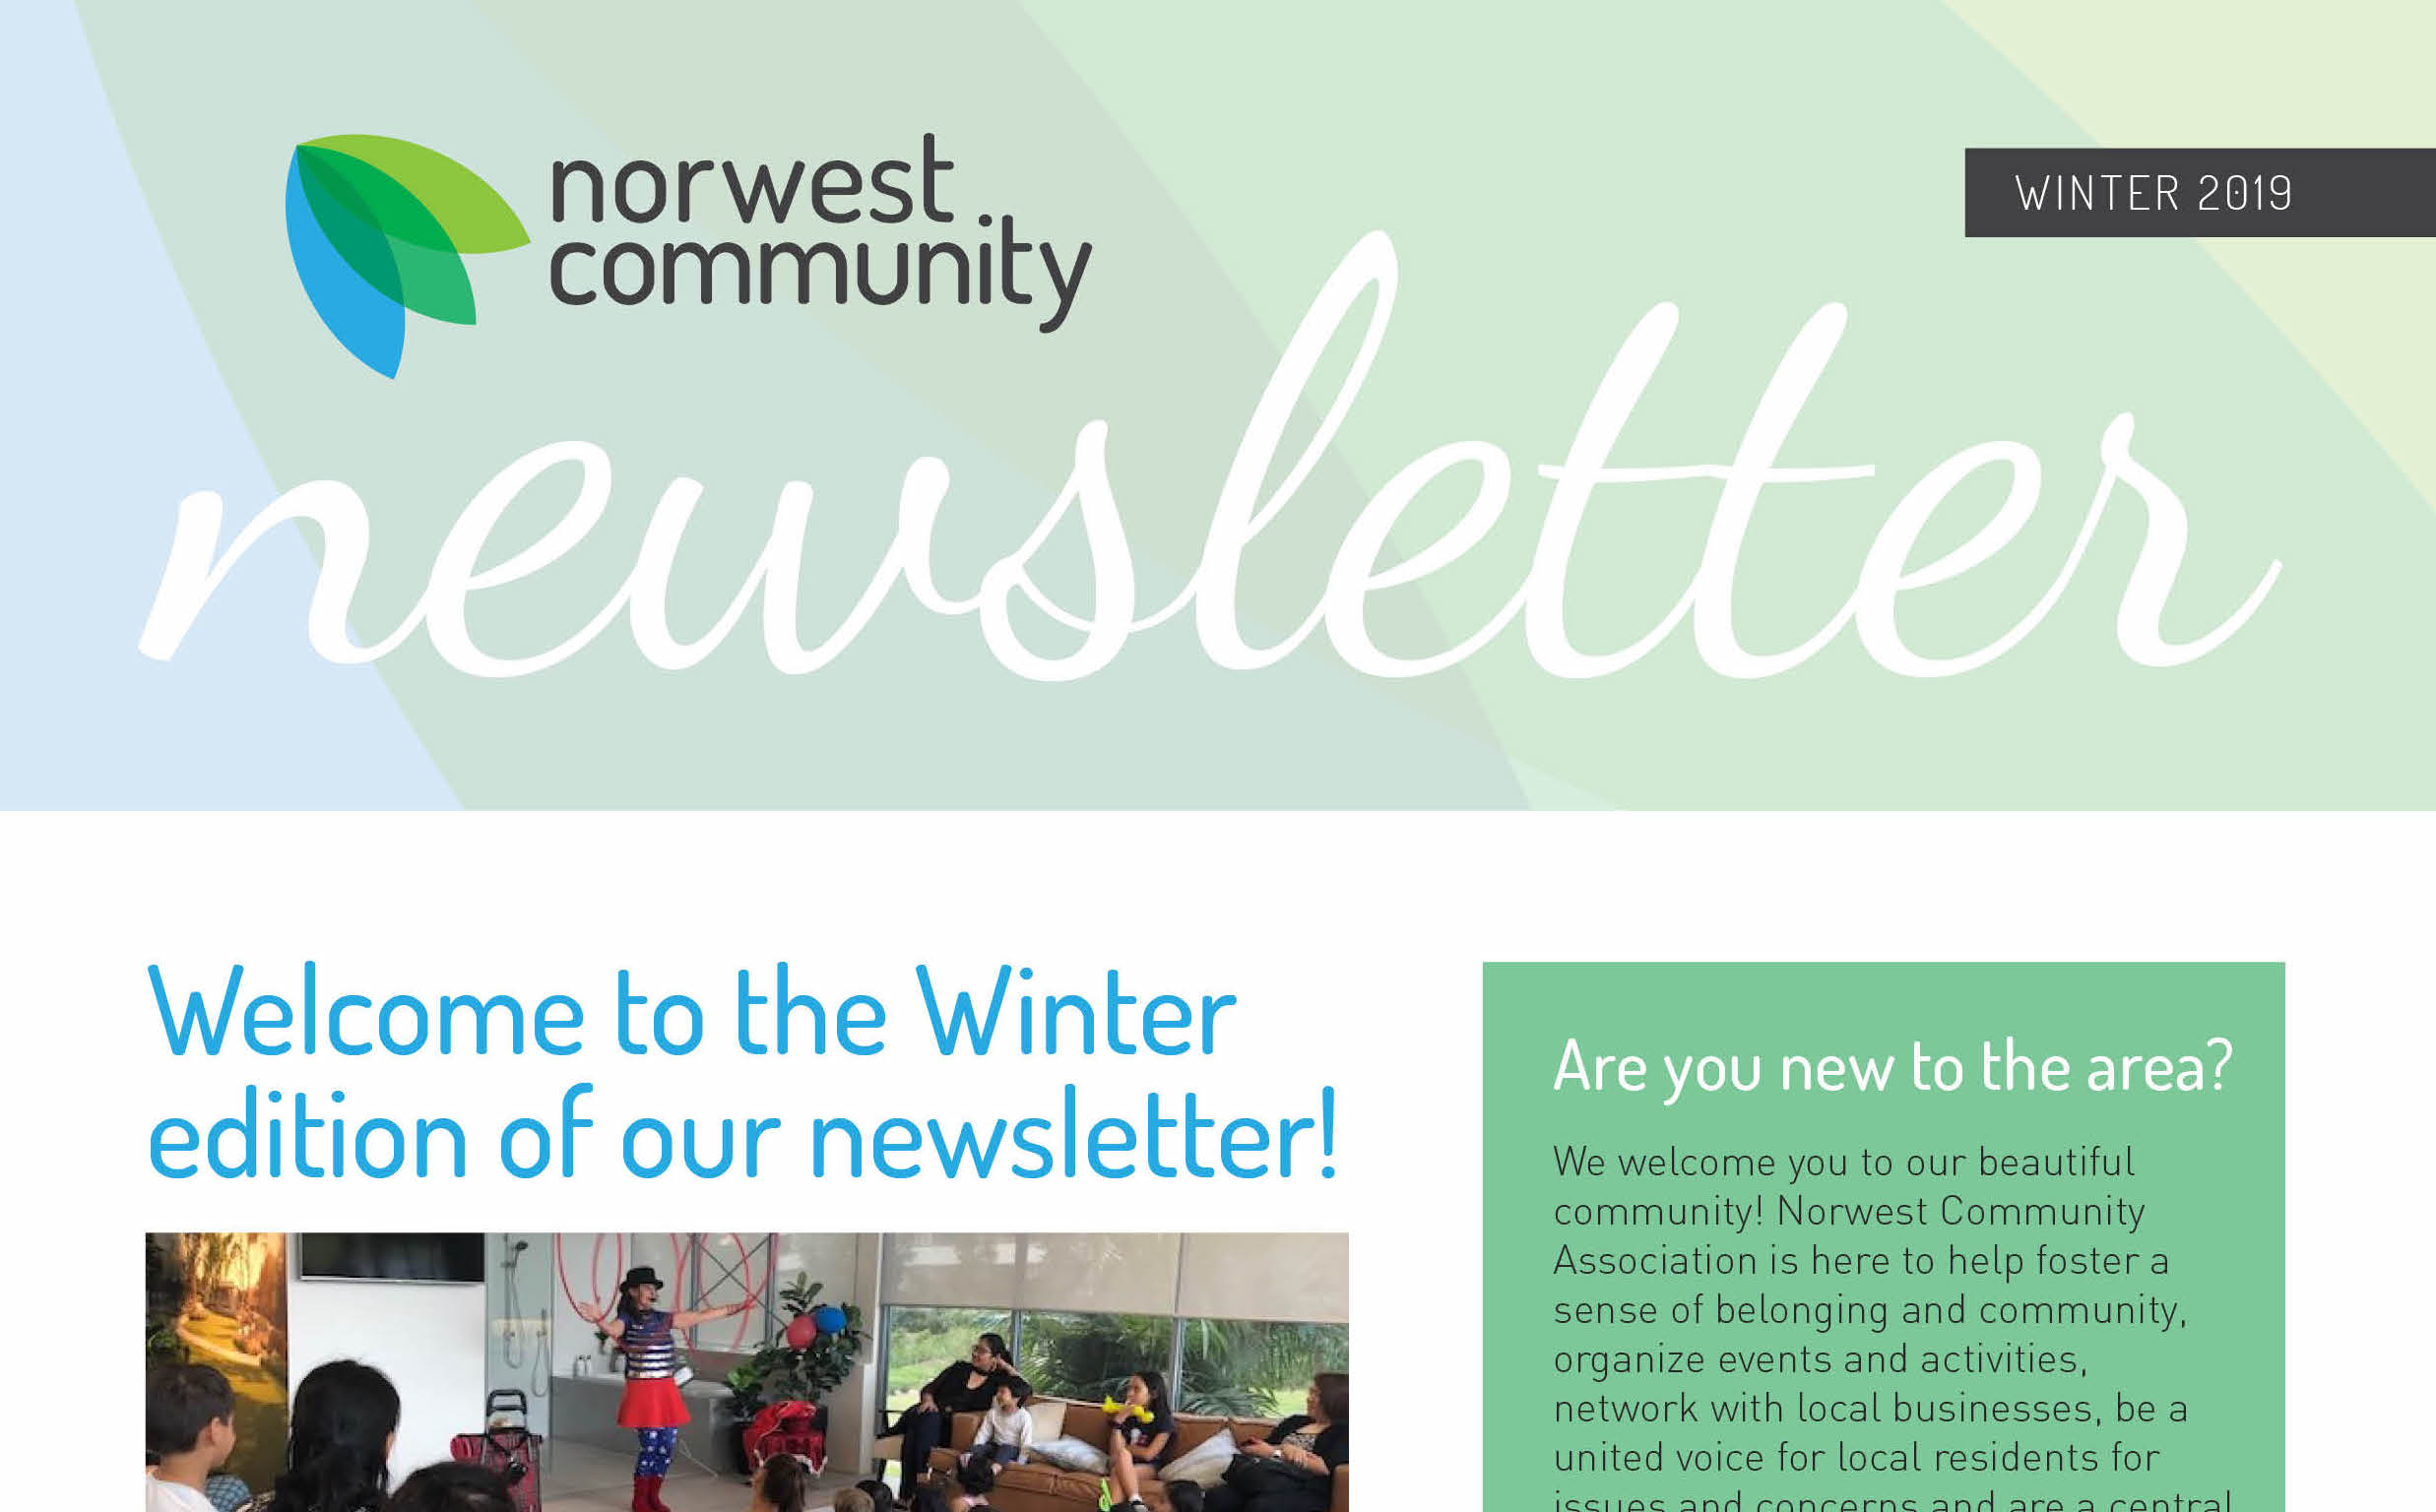 NC1017 Newsletter Winter 2019 1